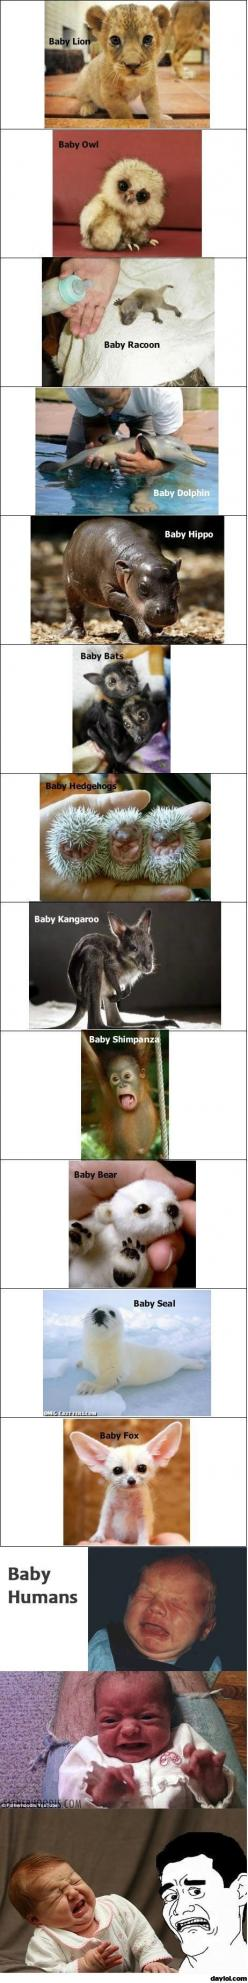 Pretty funny...and sadly true.: Babies, Cute Baby Animals, Baby Human, Baby Owl, Funny, Cute Babies, Baby Bears